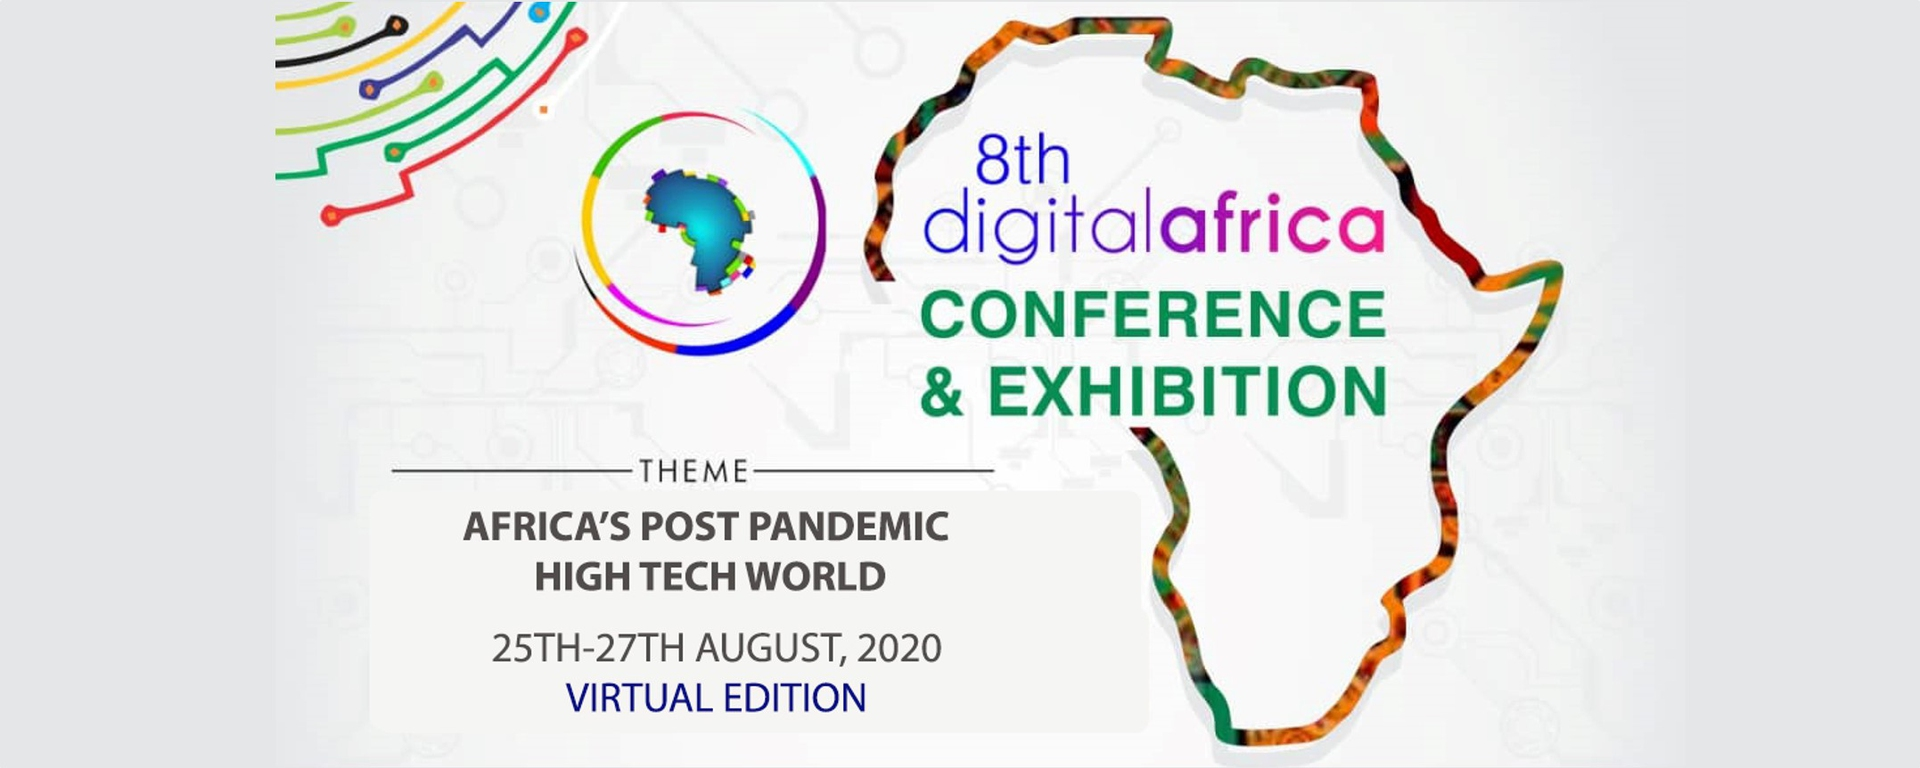 Digital Africa Global Consult Ltd - 8th Digital Africa Conference & Exhibition 2020 Movemeback African event cover image